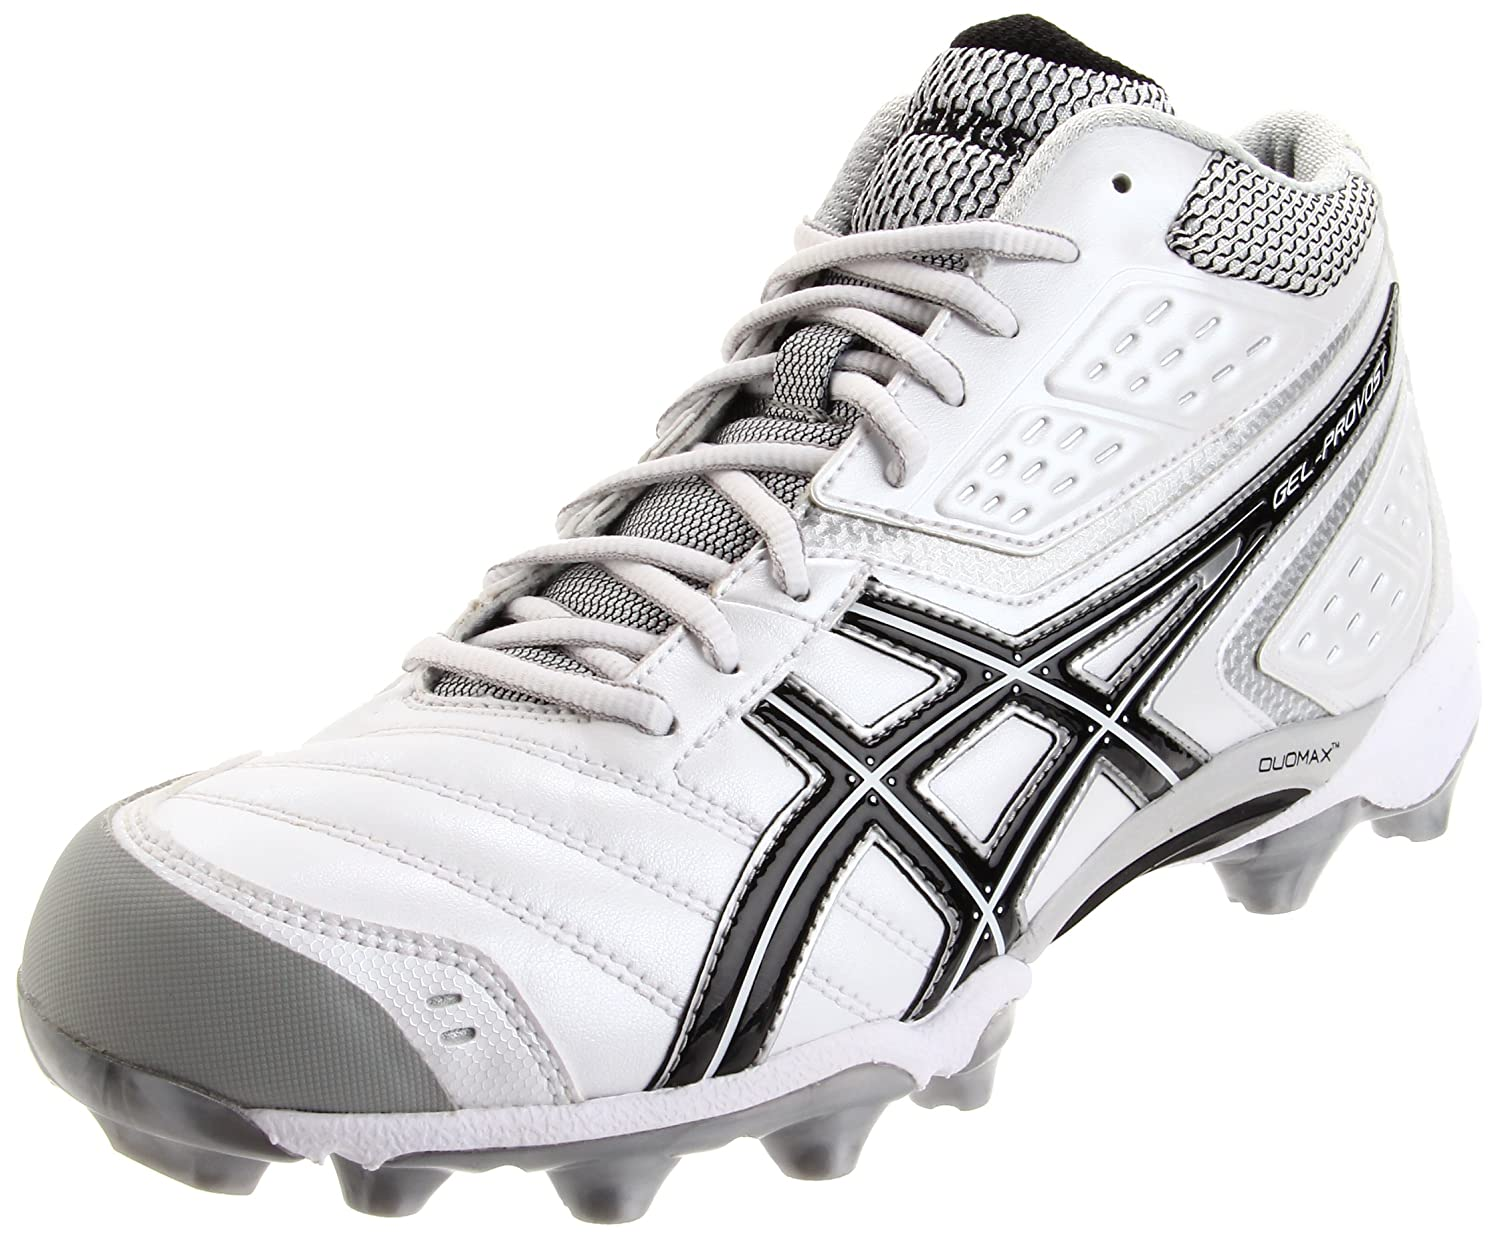 ASICS Mens GEL-Provost Lacrosse Cleat,White/Black/Silver,13 M US: Amazon.es: Zapatos y complementos